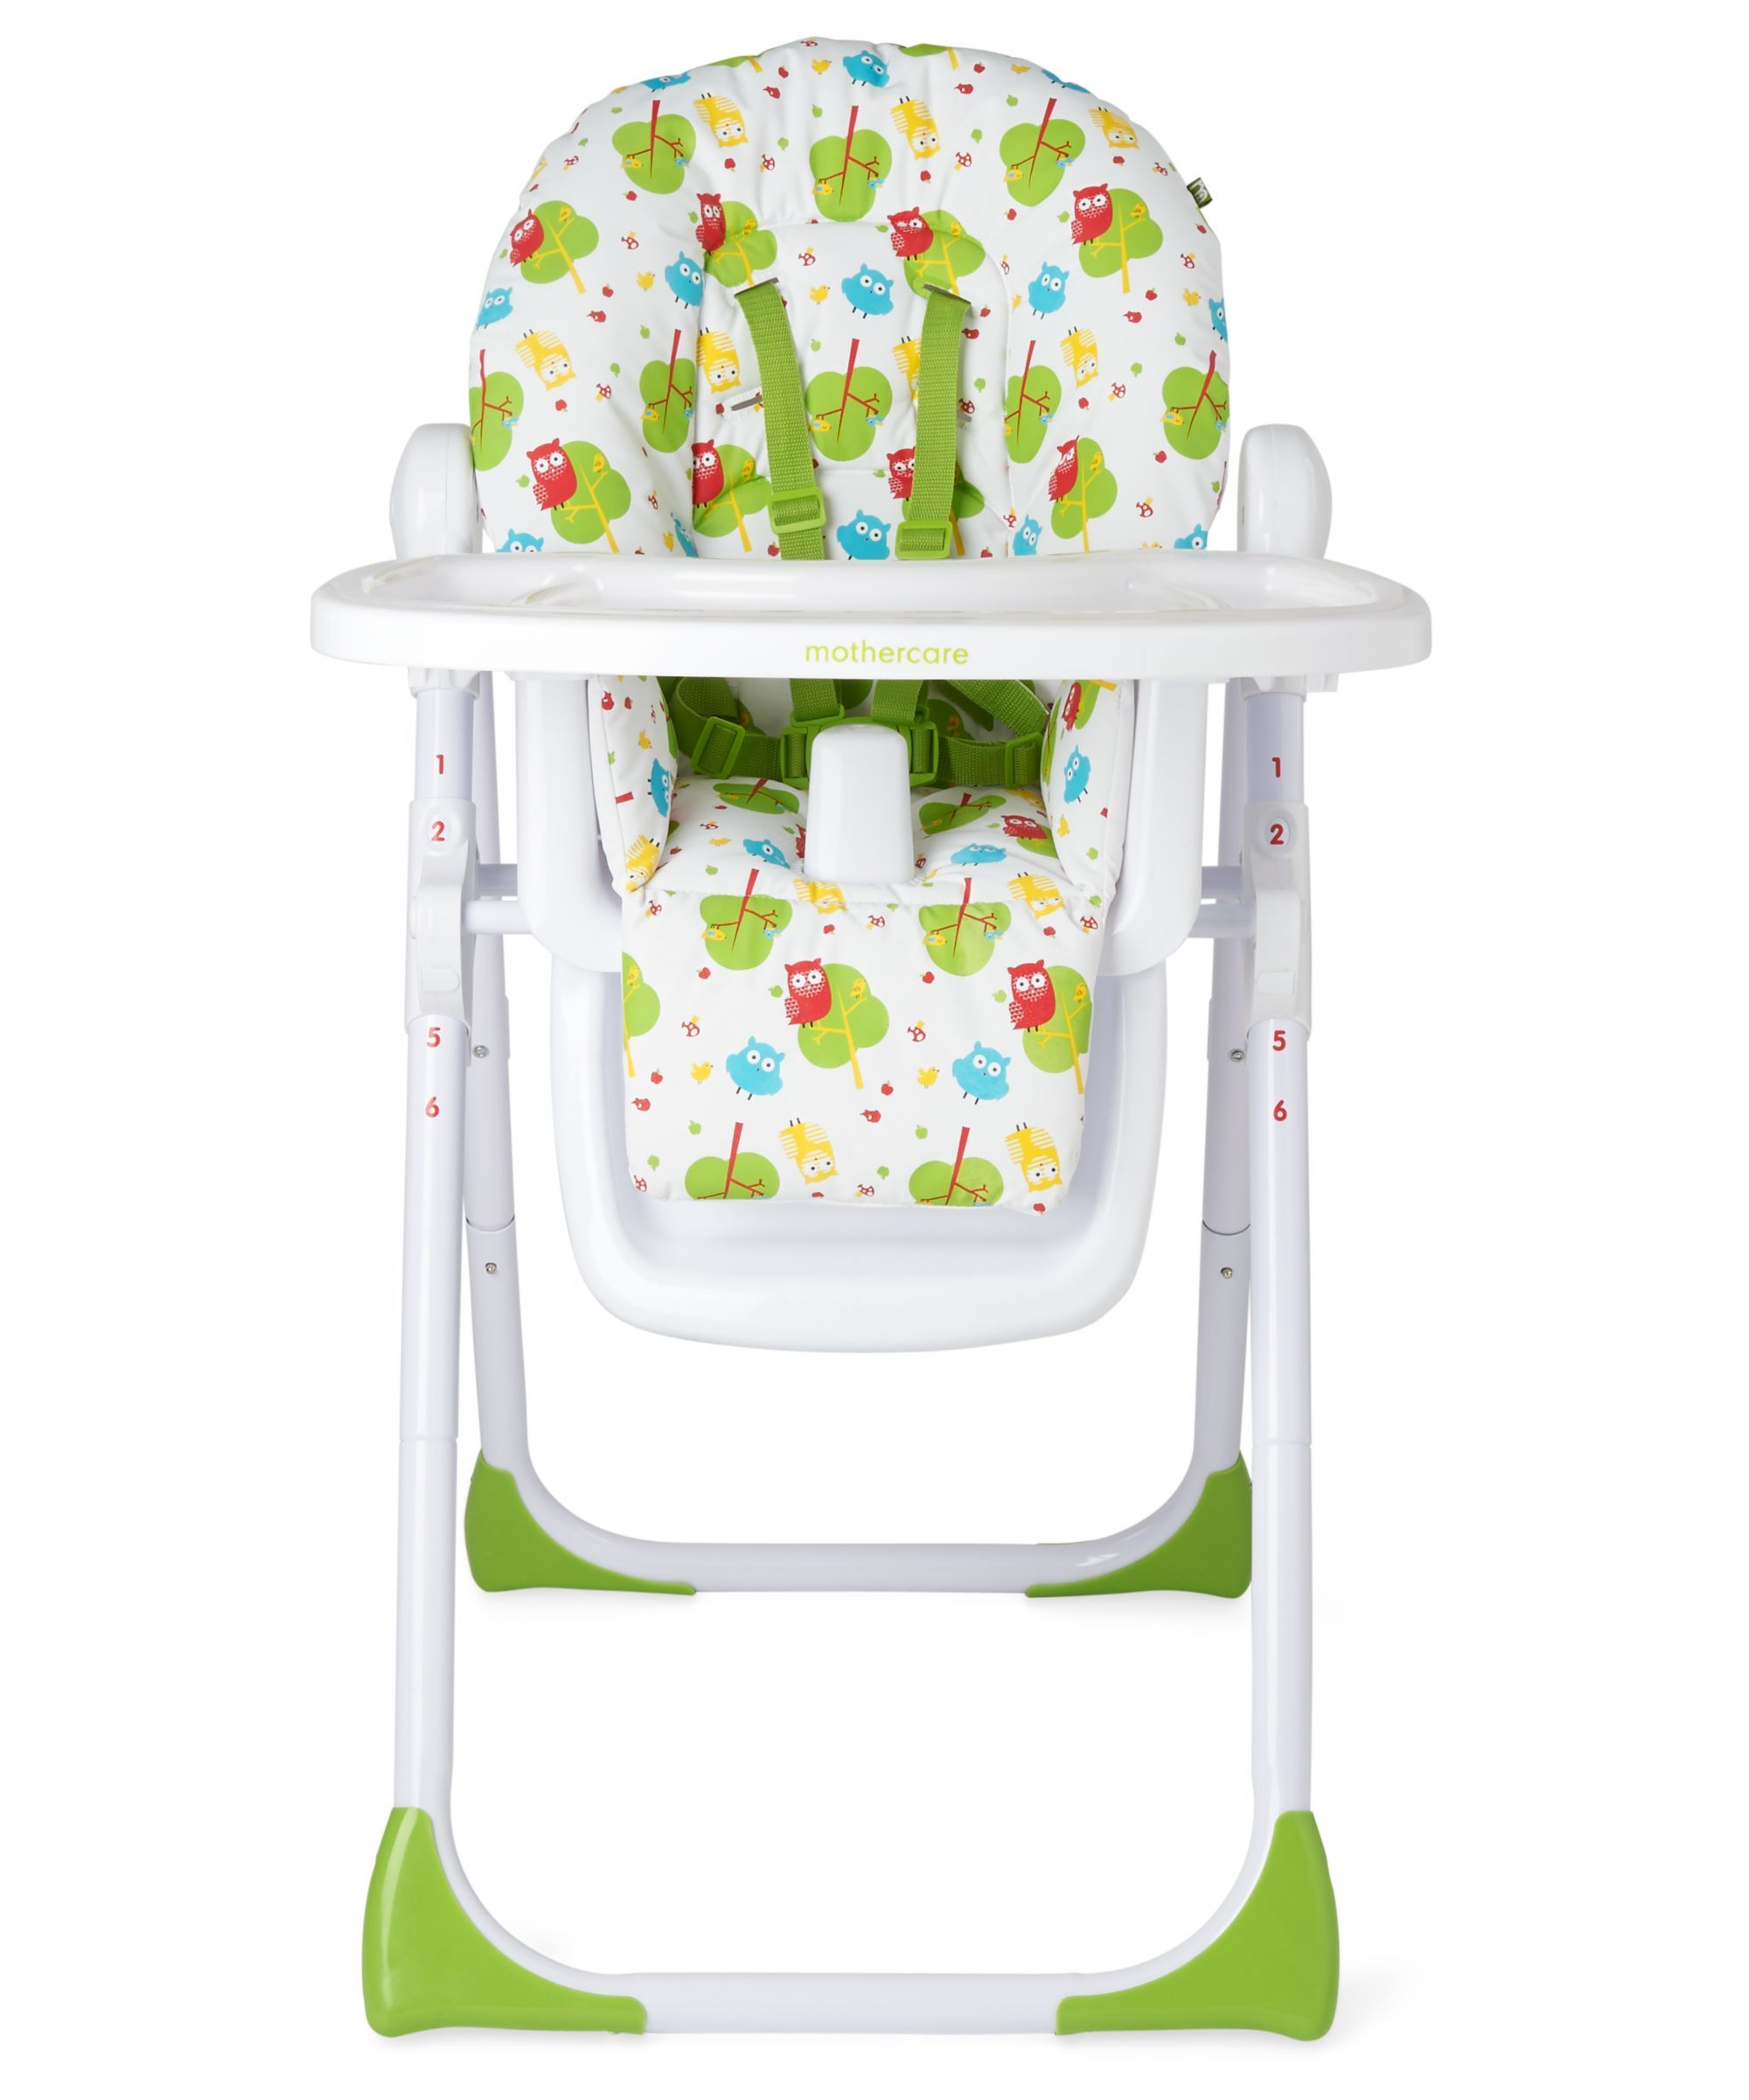 Mothercare Owls Highchair Pack n play Chair